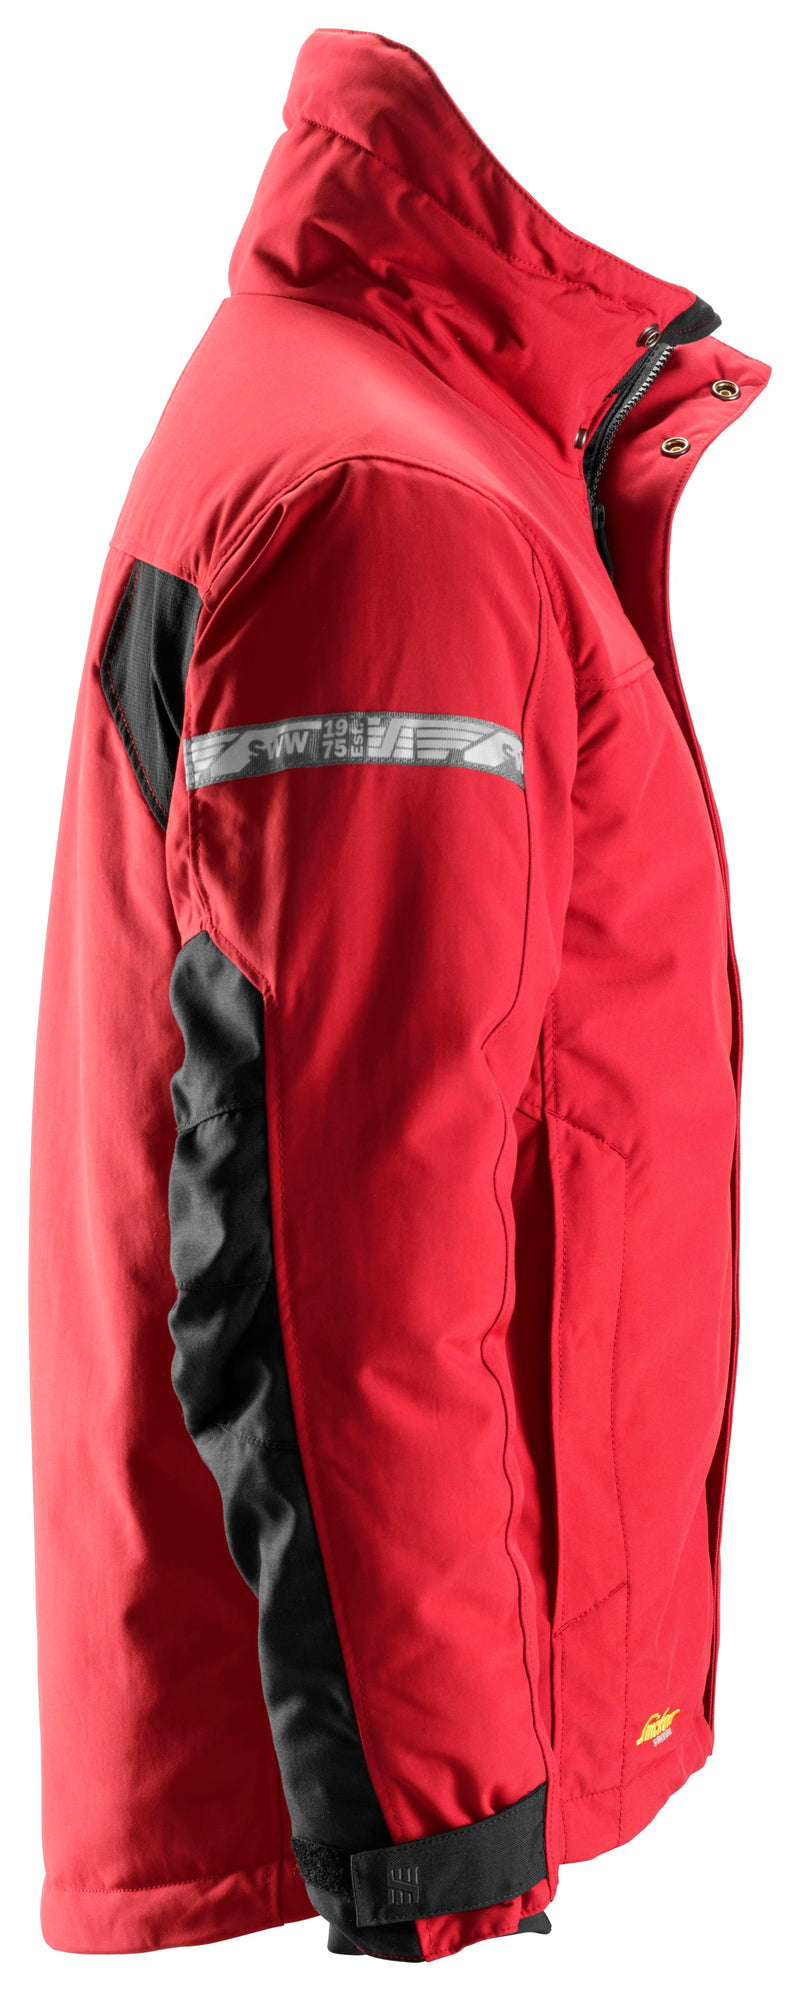 Snickers 1100 AllroundWork 37.5 Insulated Jack - Snickers Werkkledij